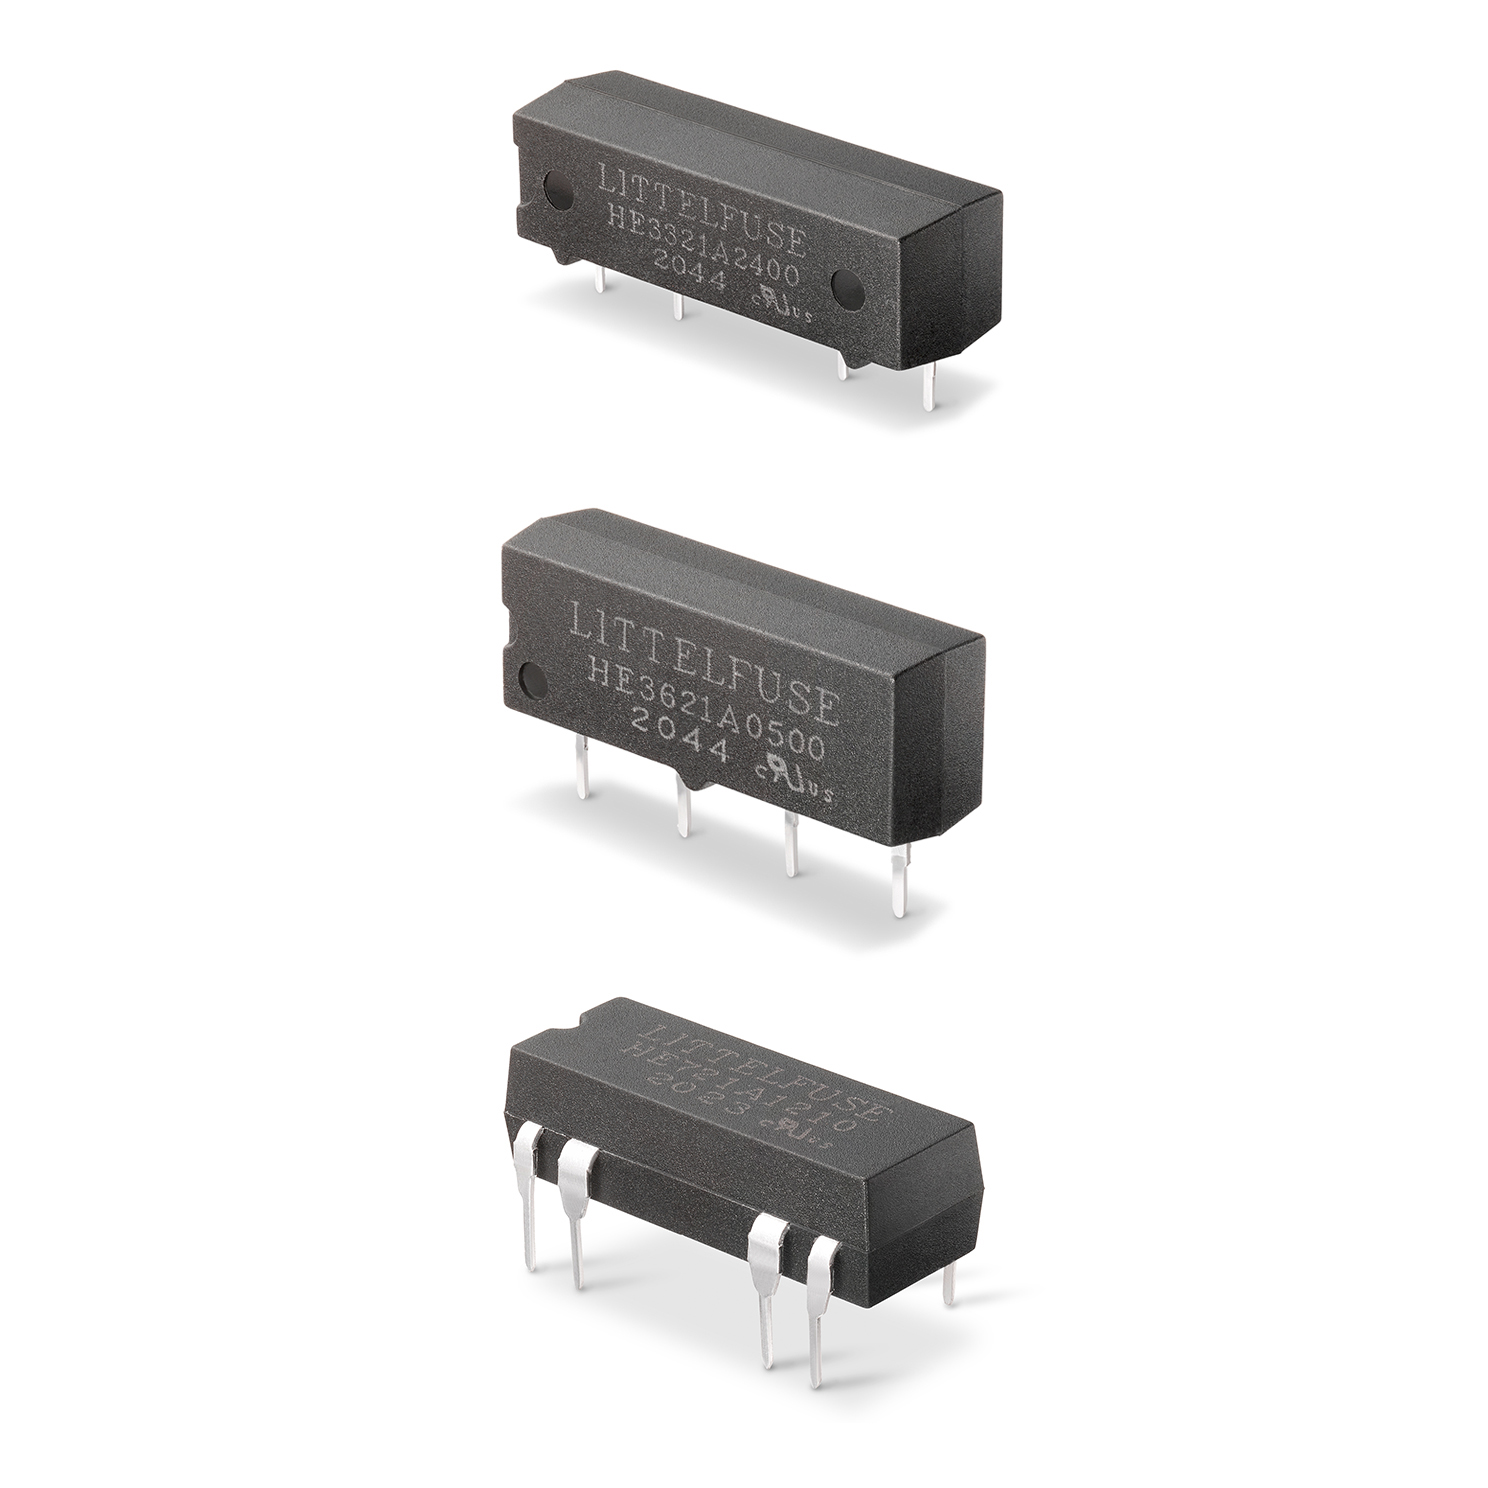 Reed Relays Offer Switching of AC and DC Small Signals